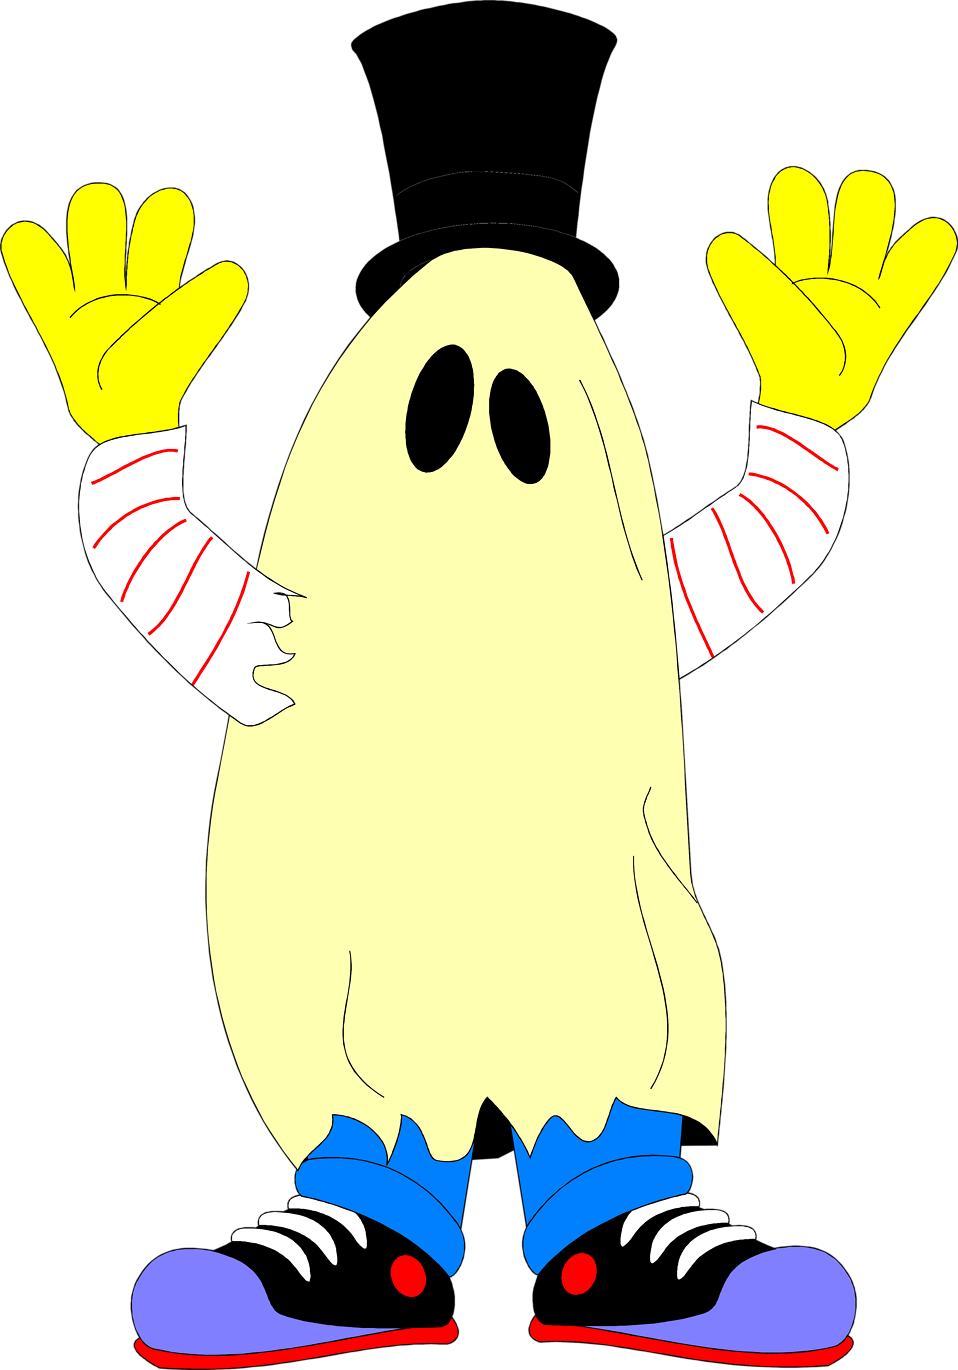 Halloween costumes clipart free clipart transparent stock Ghost | Free Stock Photo | Illustration of a ghost costume | # 4901 clipart transparent stock